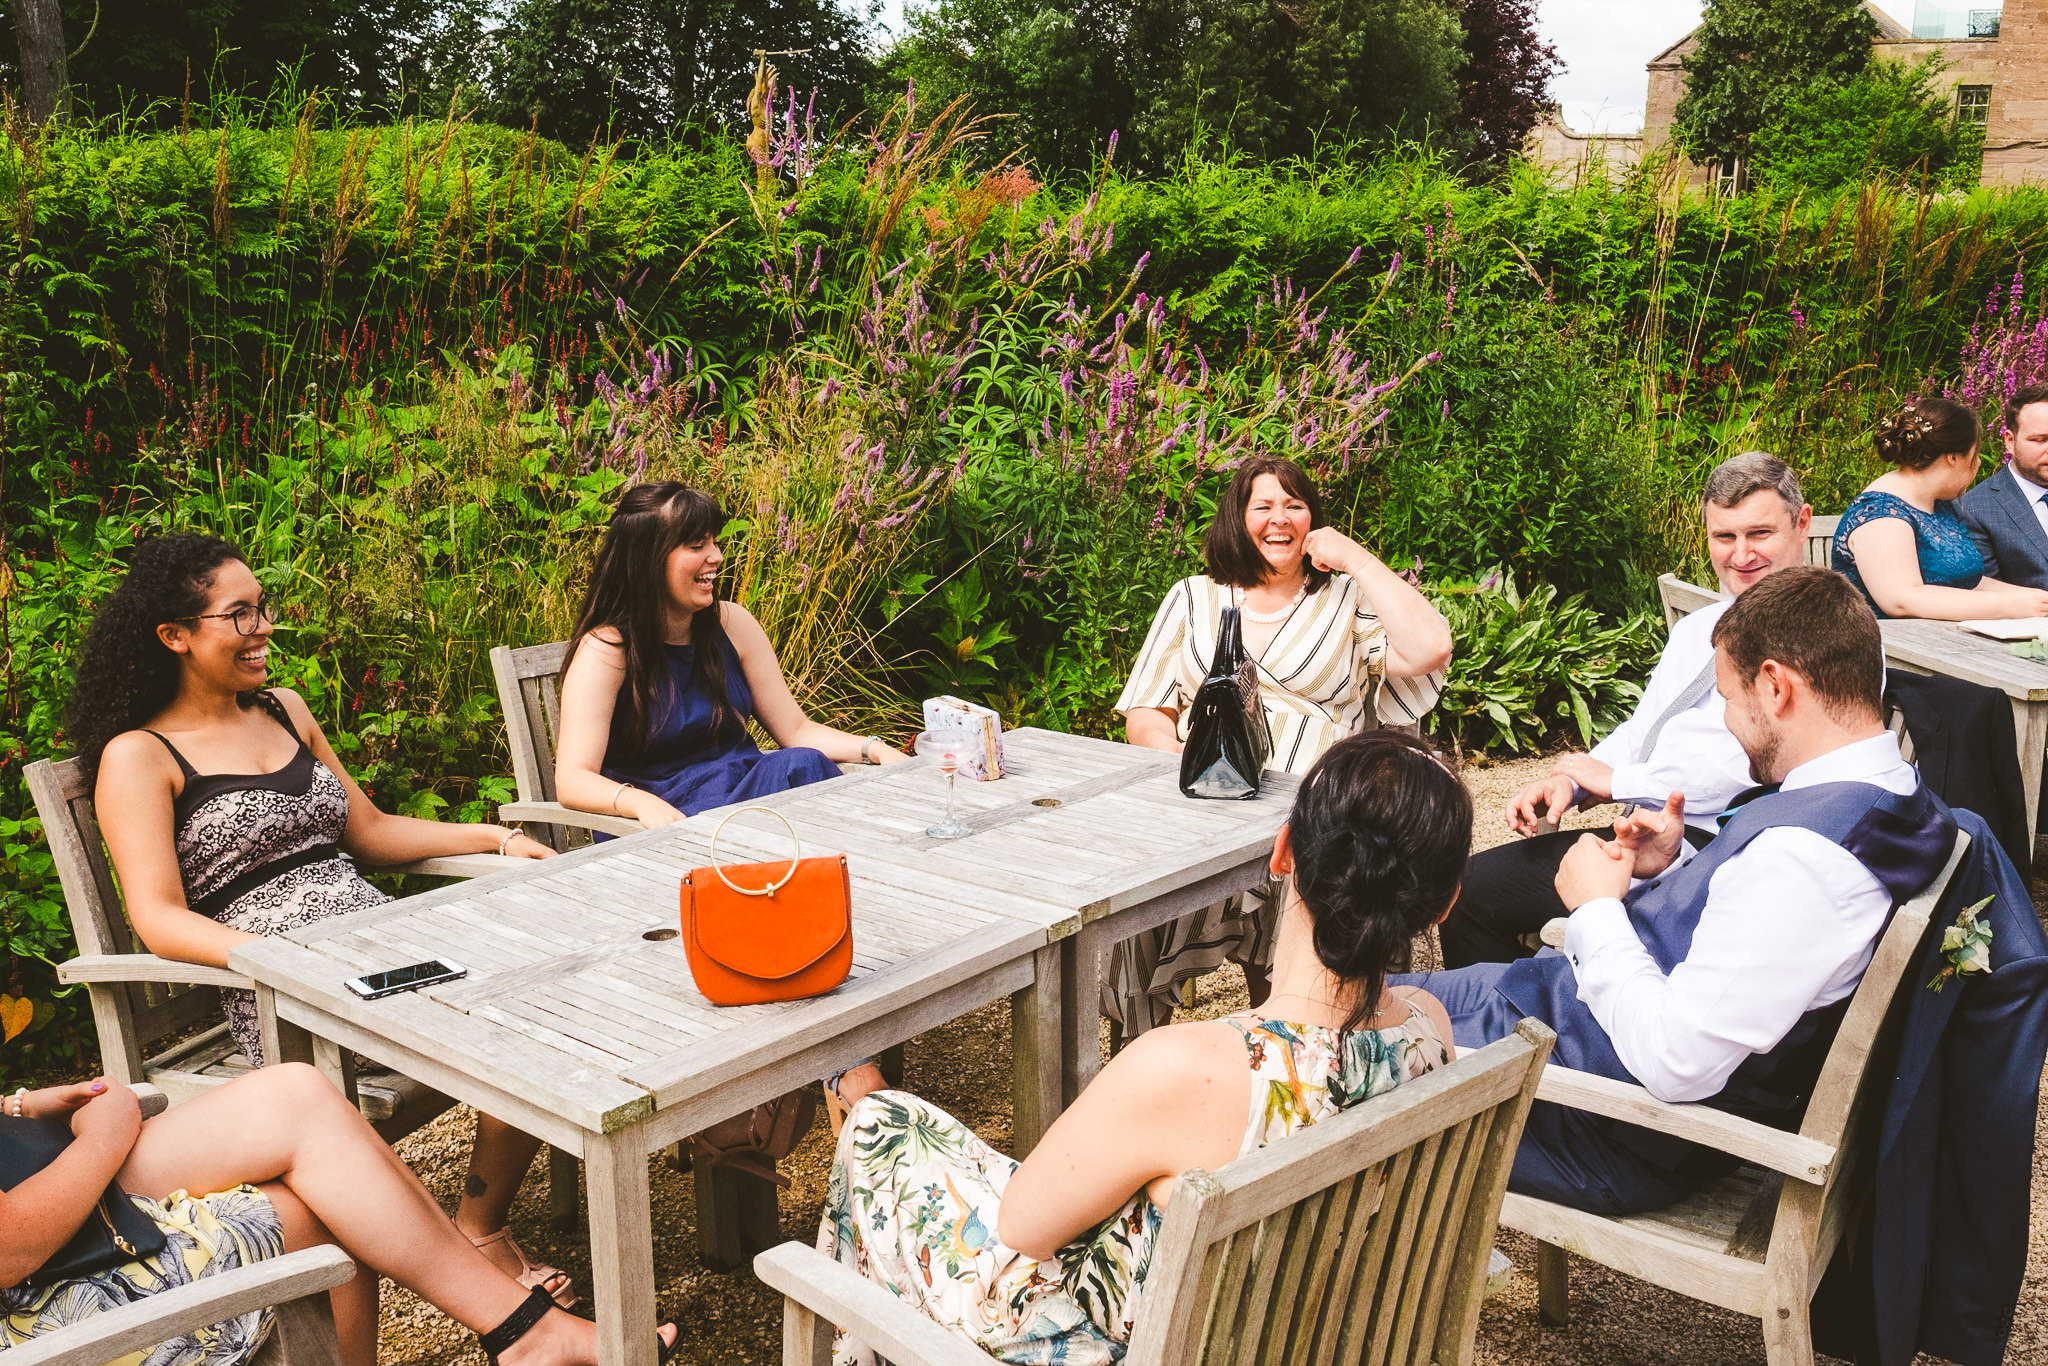 Wedding guests laugh as they sit around an outside table